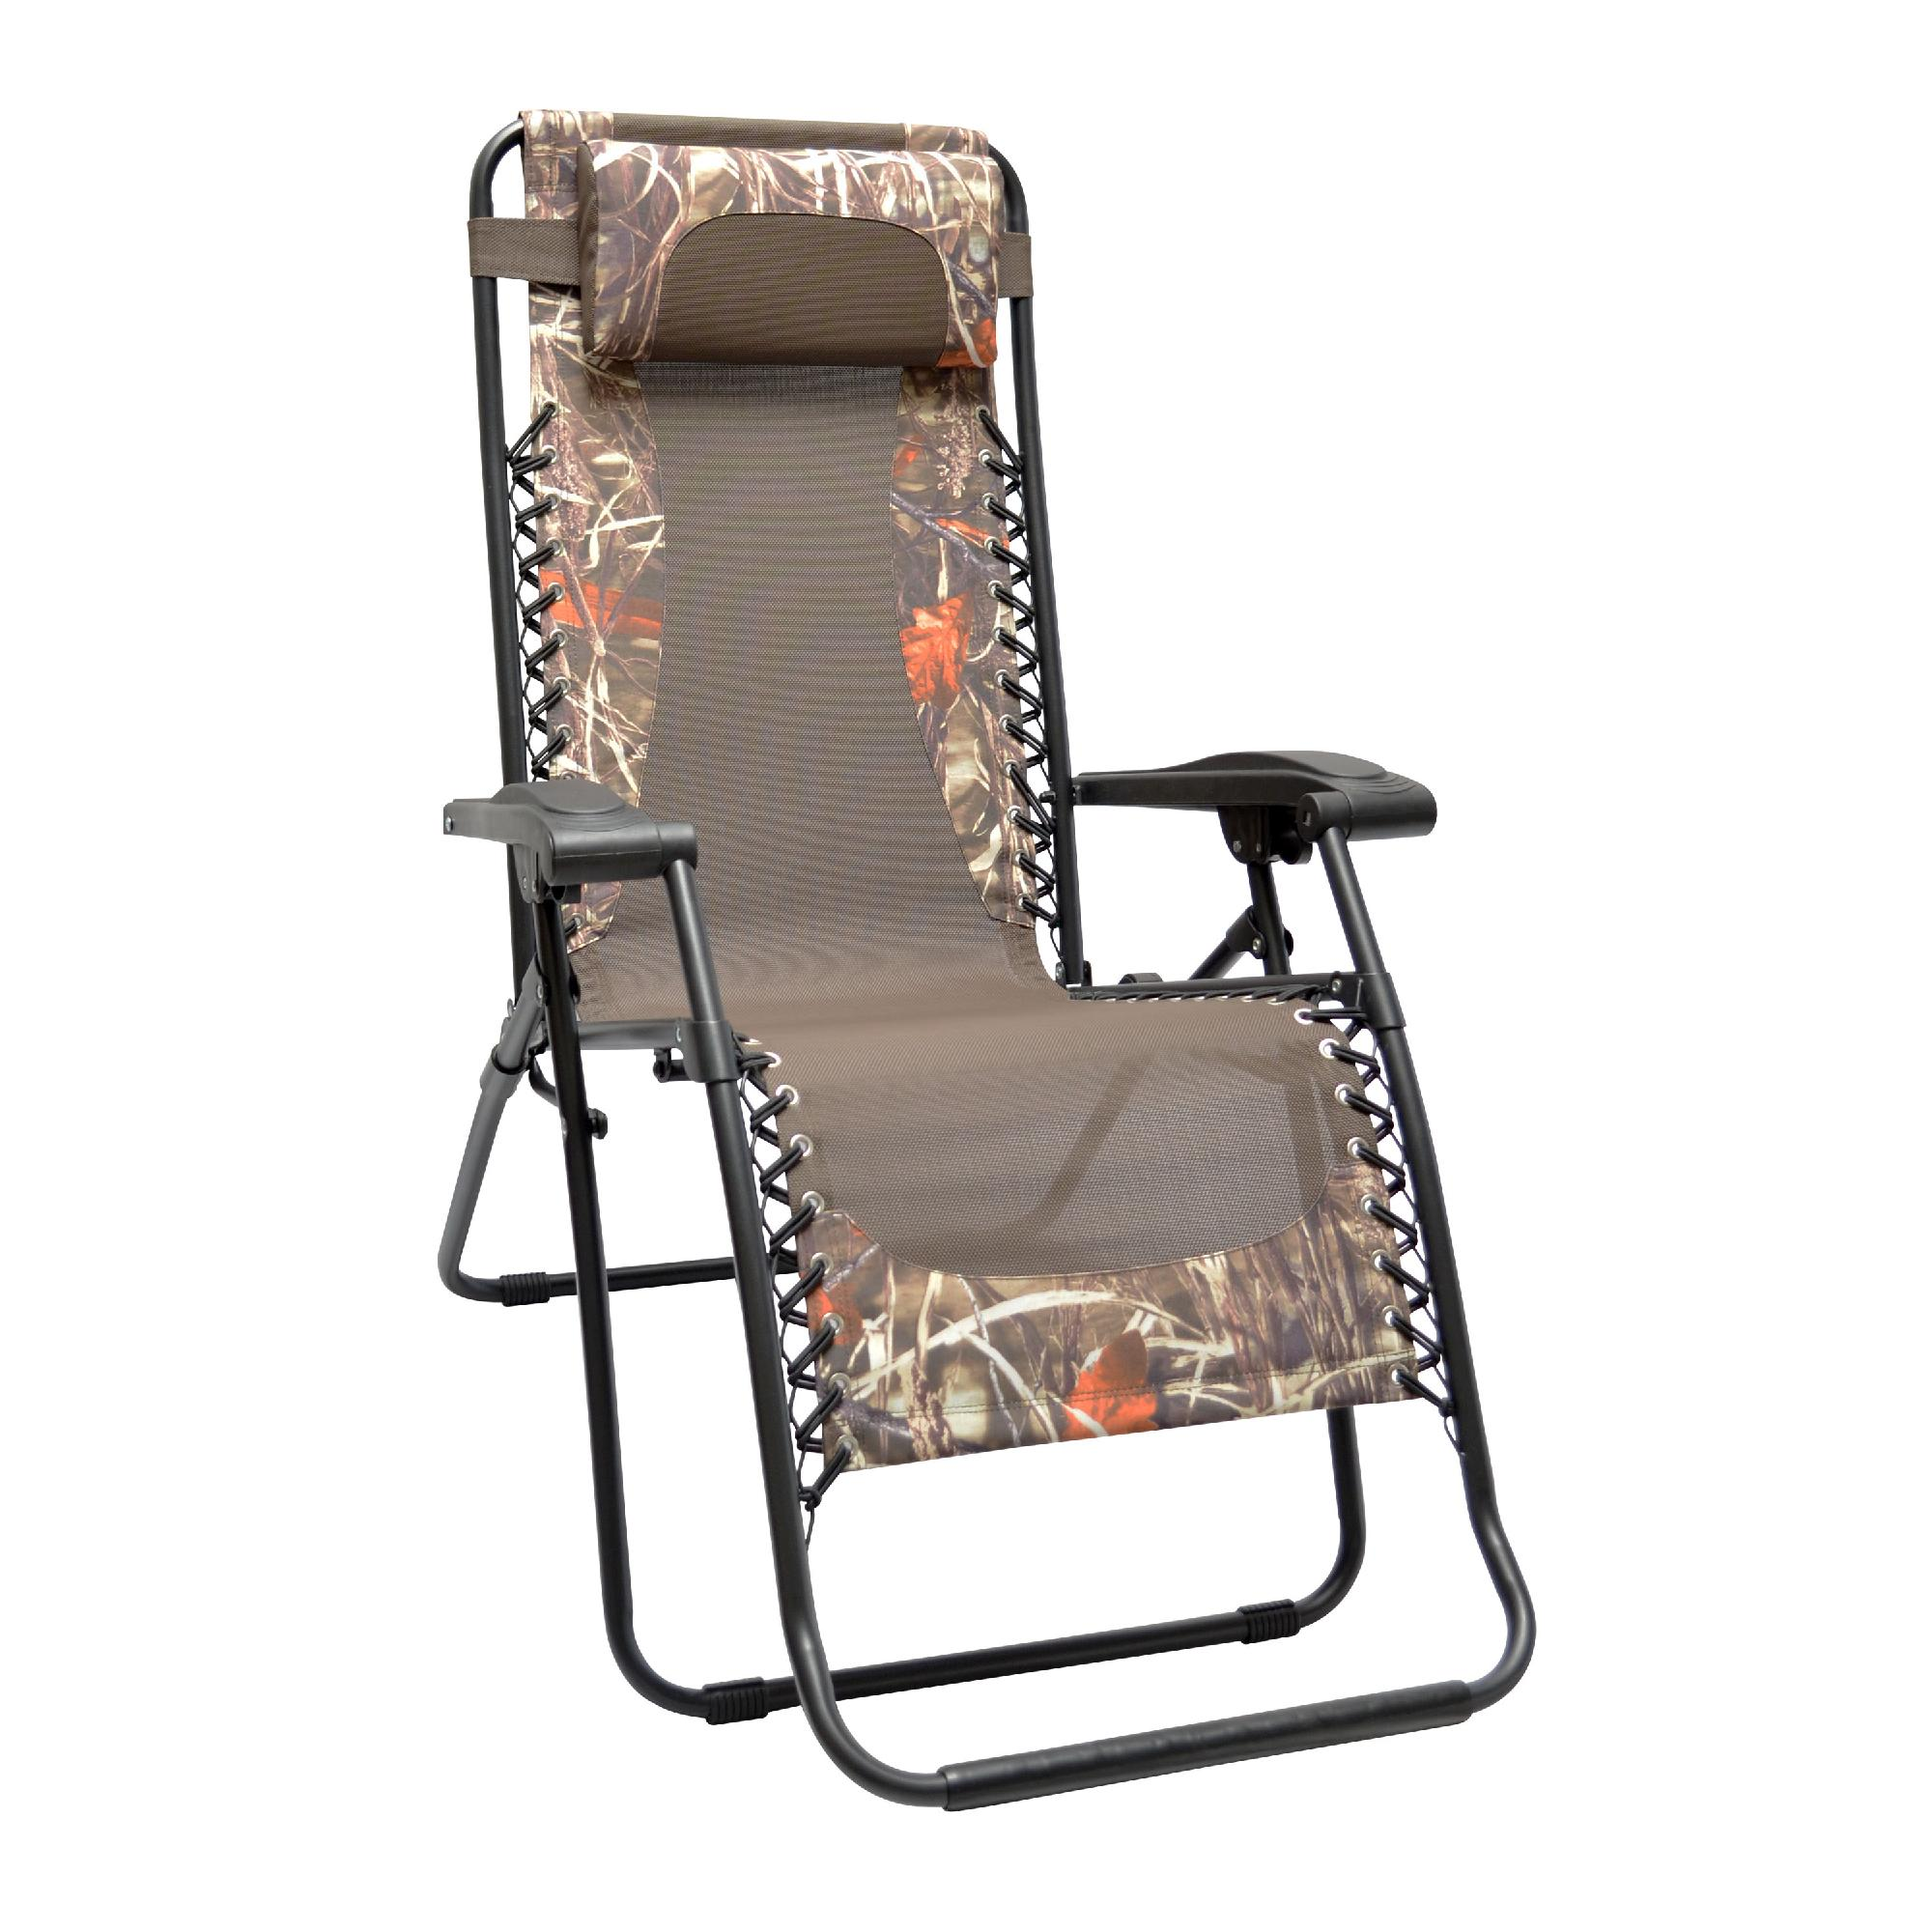 caravan canopy folding chairs lazyboy chair accessories sports infinity zero gravity camouflauge